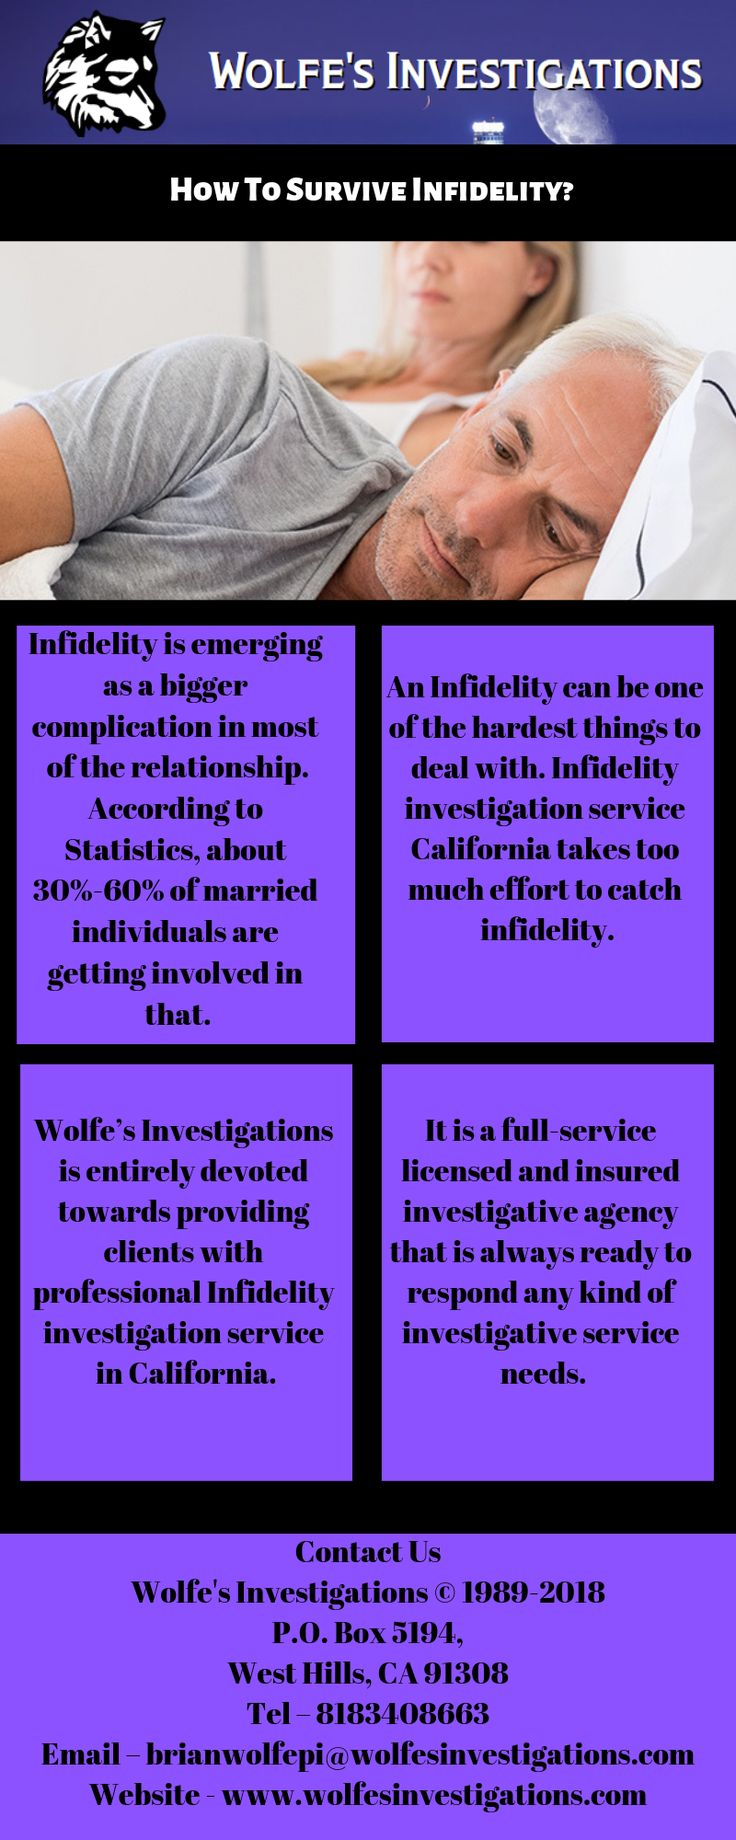 How To Survive Infidelity Private Detective Agency Private Investigator Infidelity